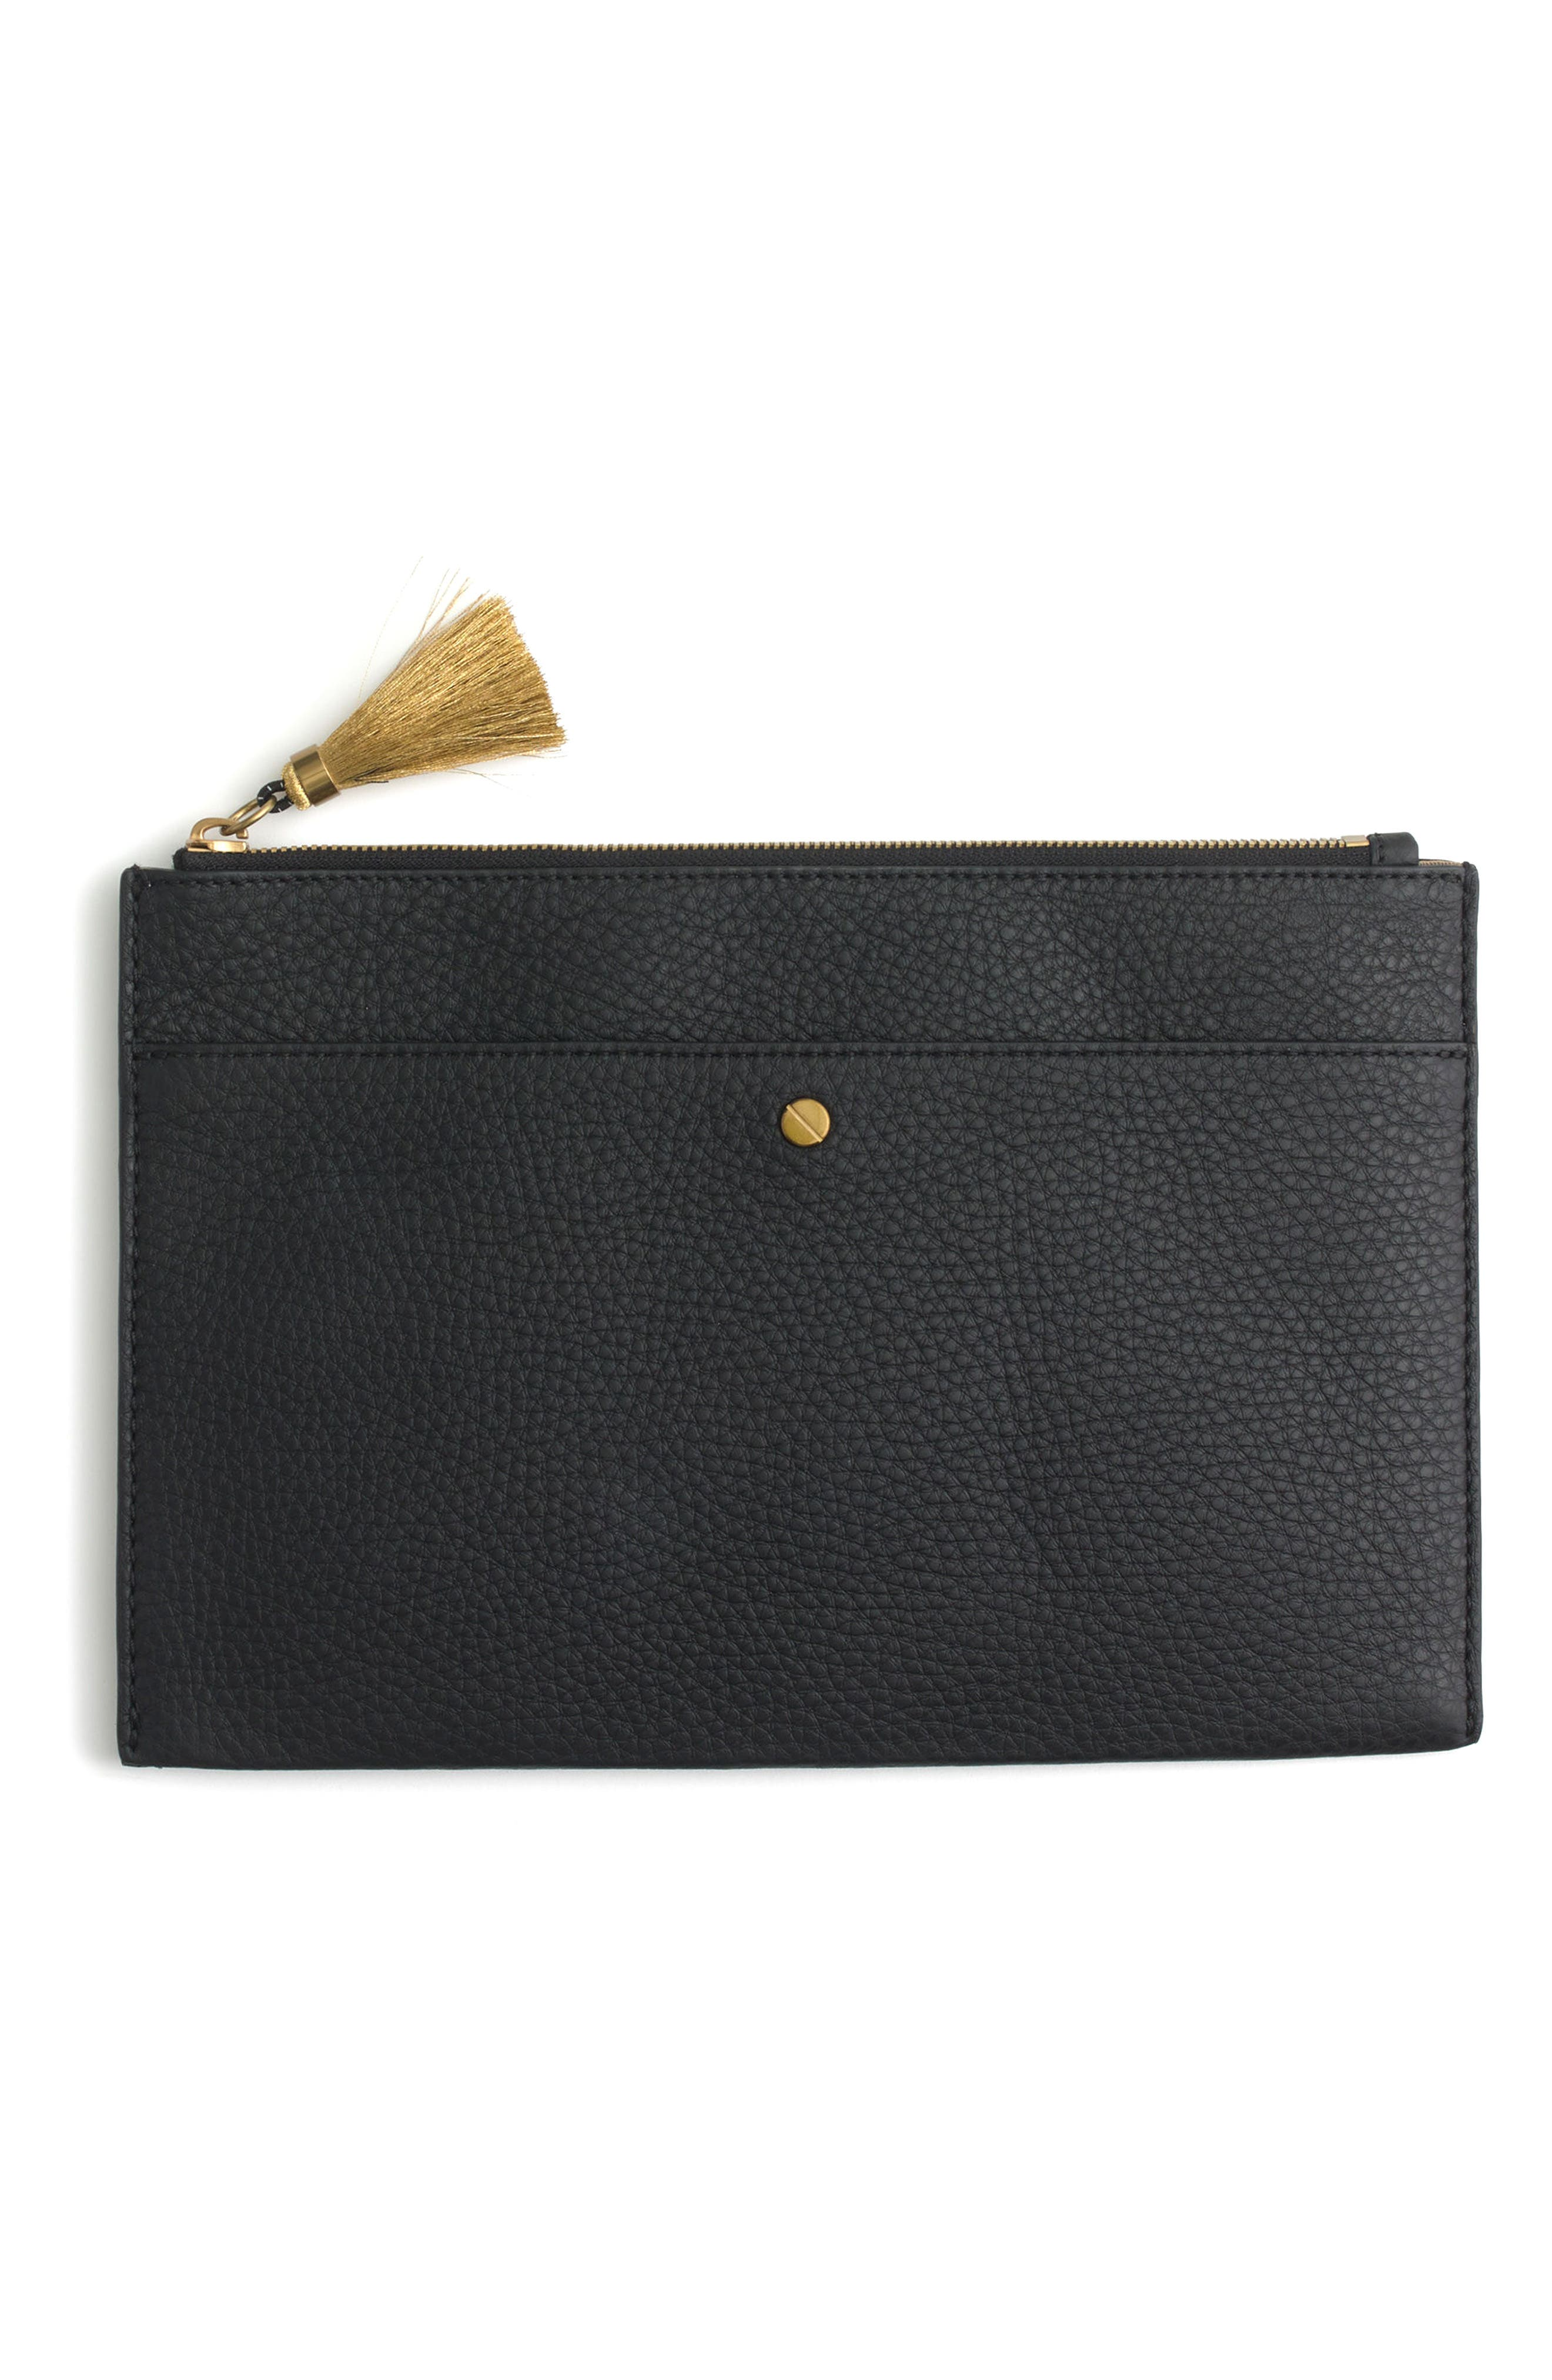 Alternate Image 1 Selected - J.Crew Large Signet Pouch